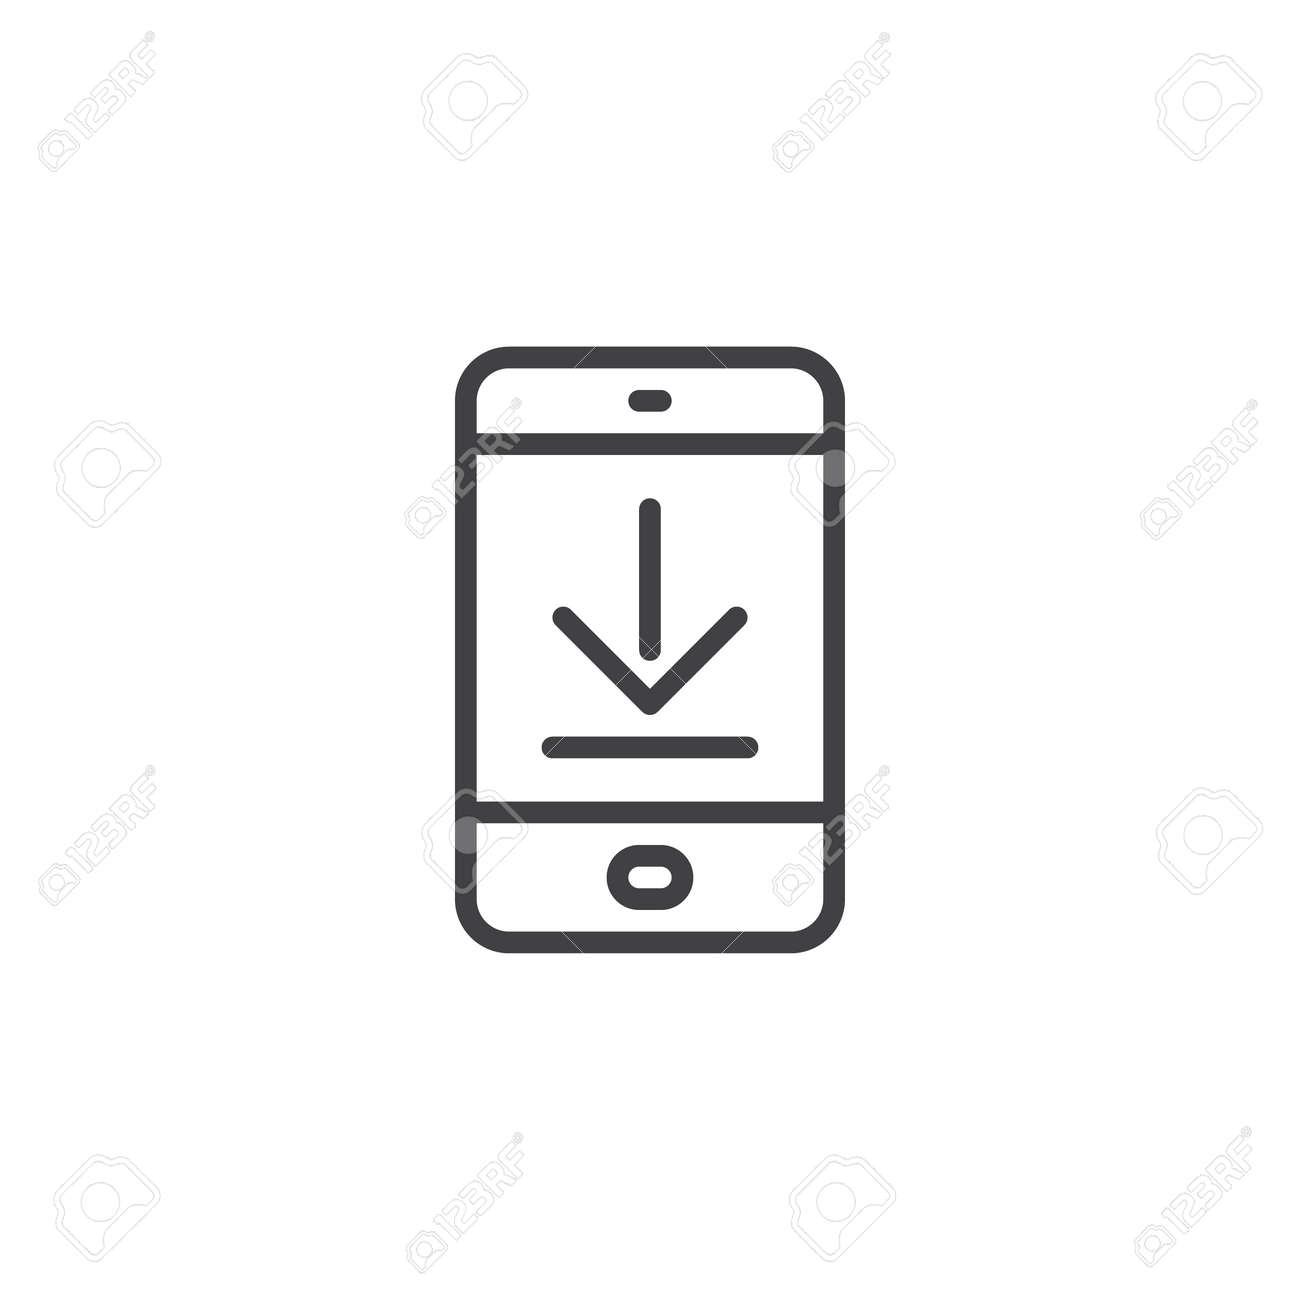 Download mobile app screen outline icon  linear style sign for